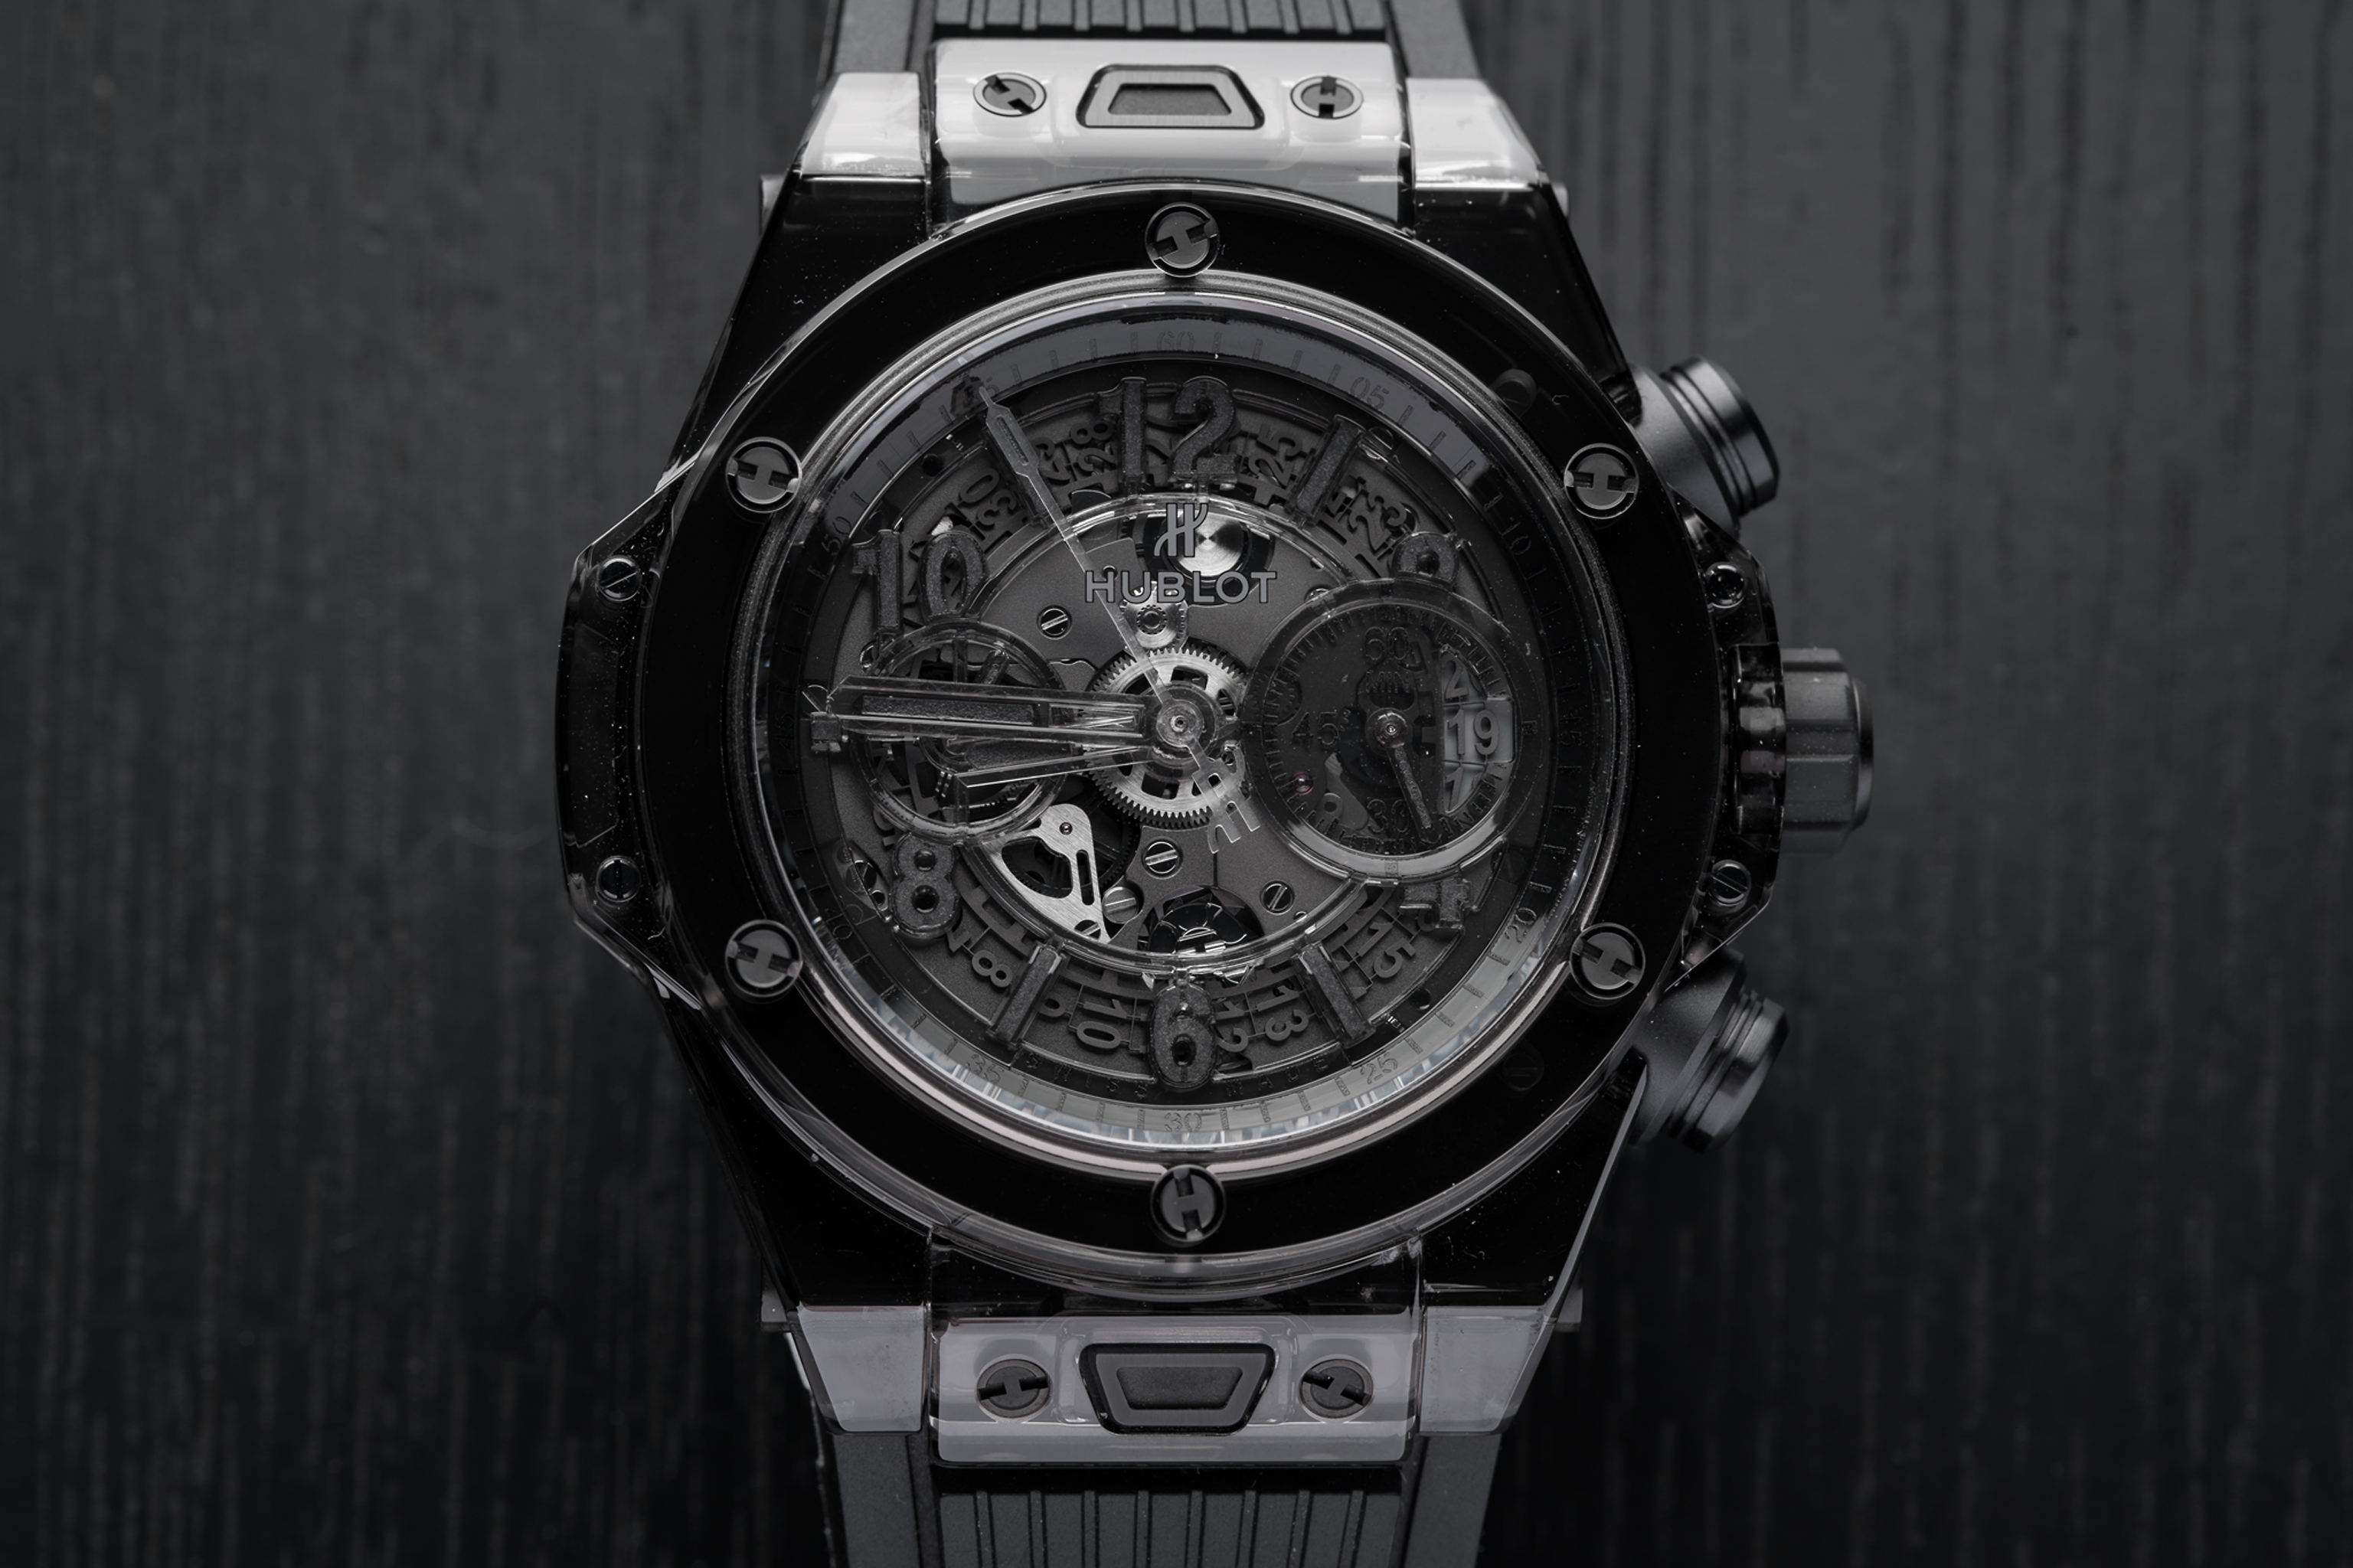 Baselworld 2016 Hublot Celebrates The Tenth Anniversary Of The